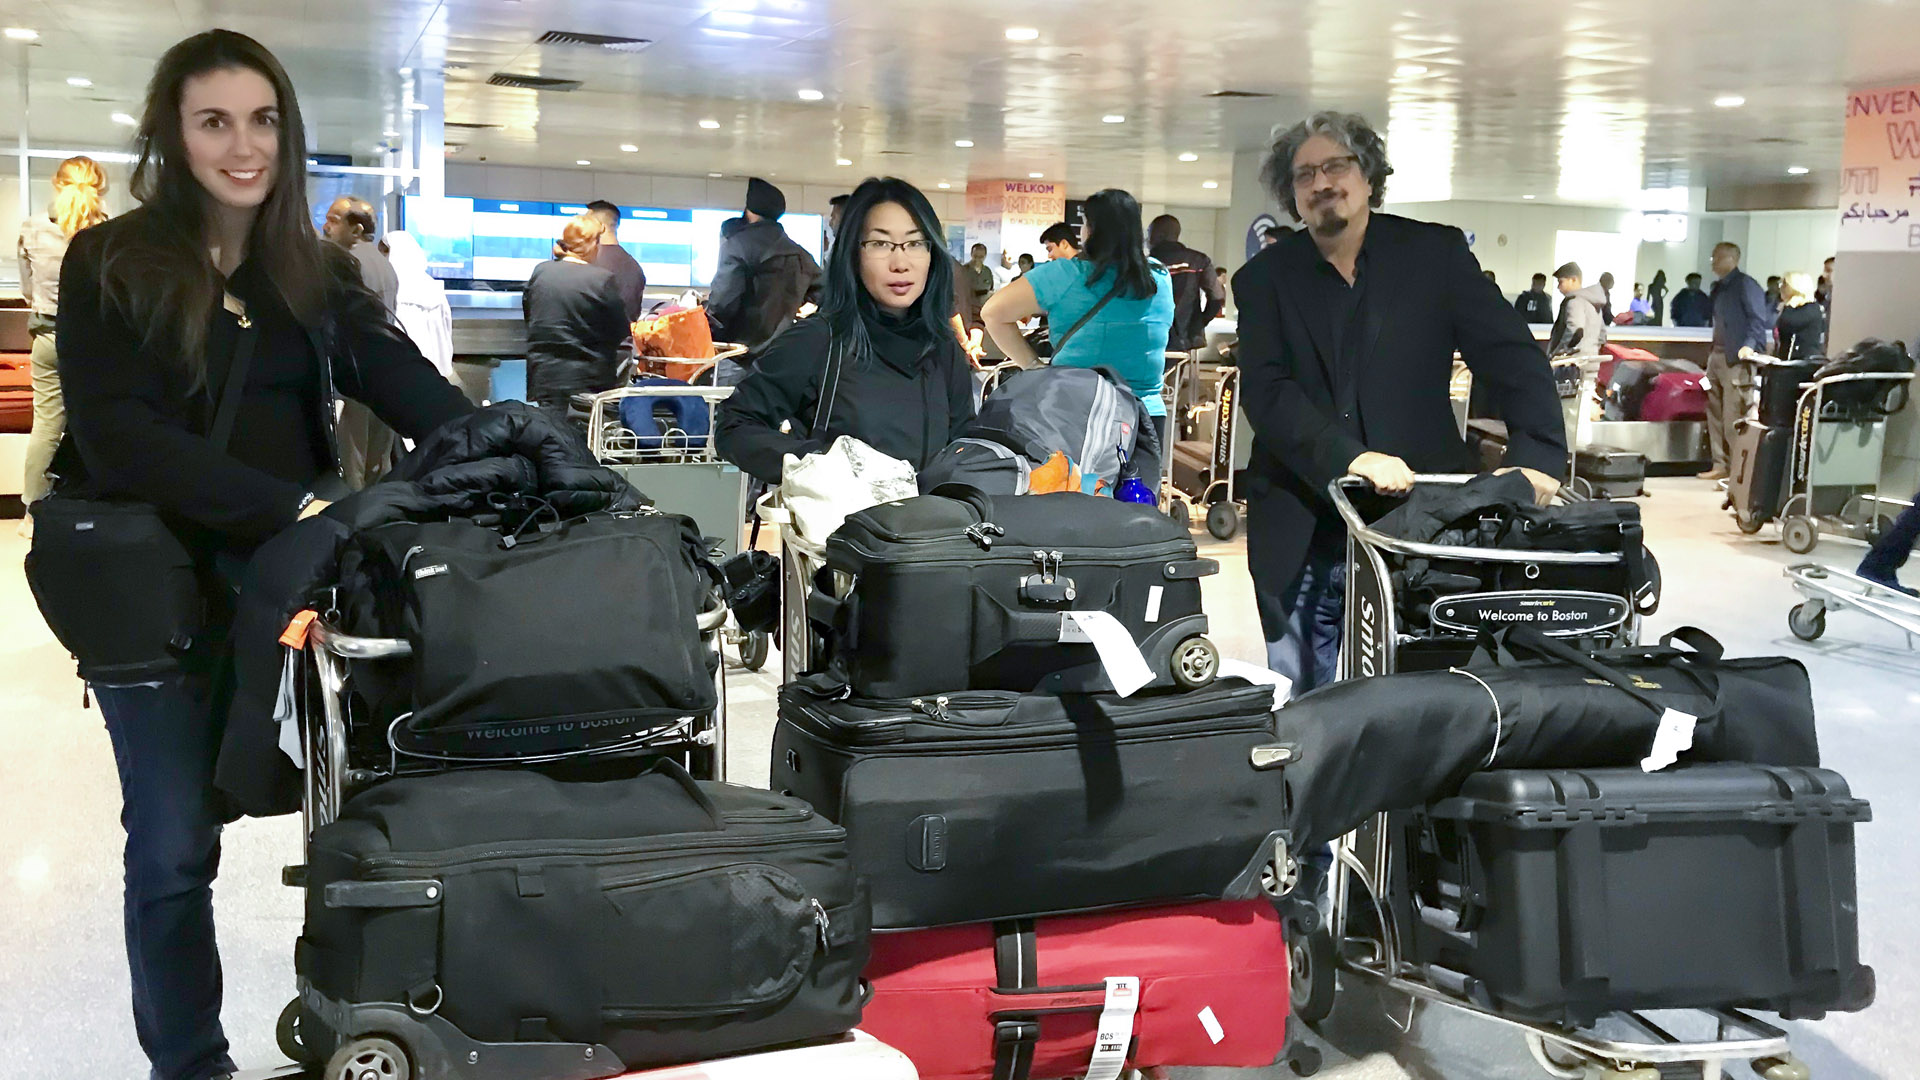 Carin, Keiko and Rick at the airport with lots of baggage.